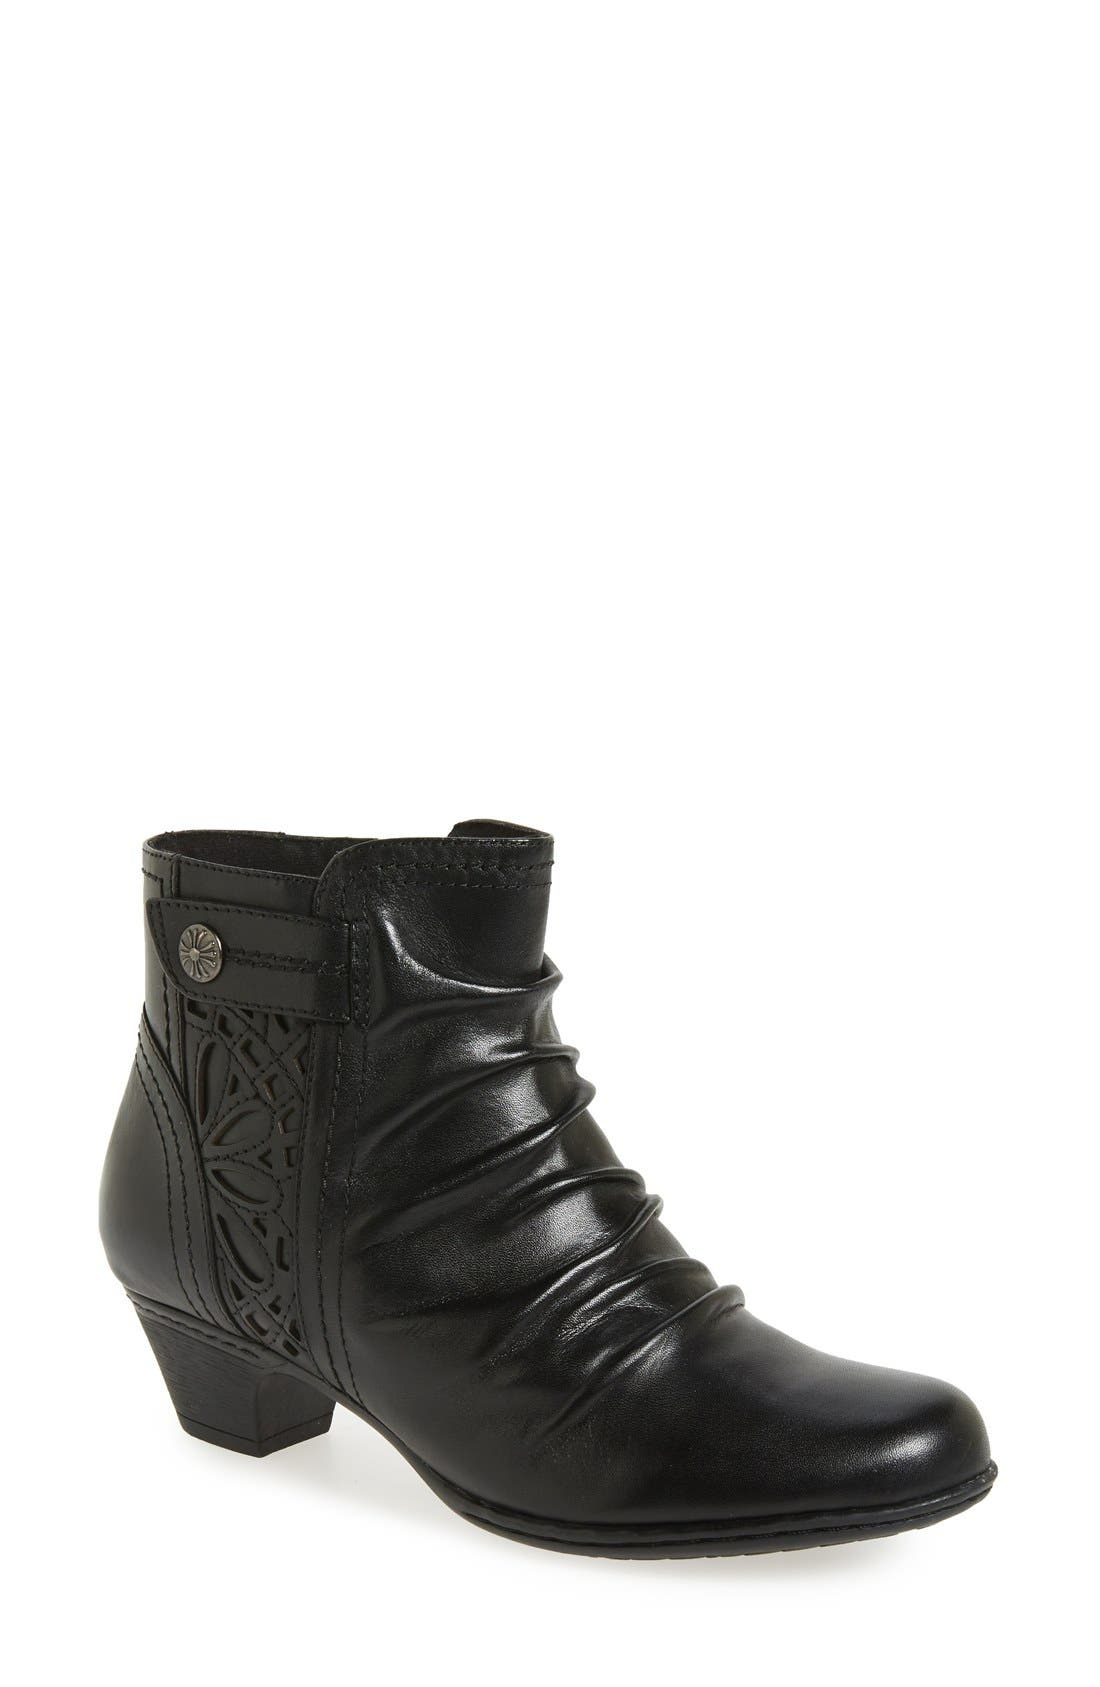 Main Image - Rockport Cobb Hill 'Abilene' Bootie (Women)